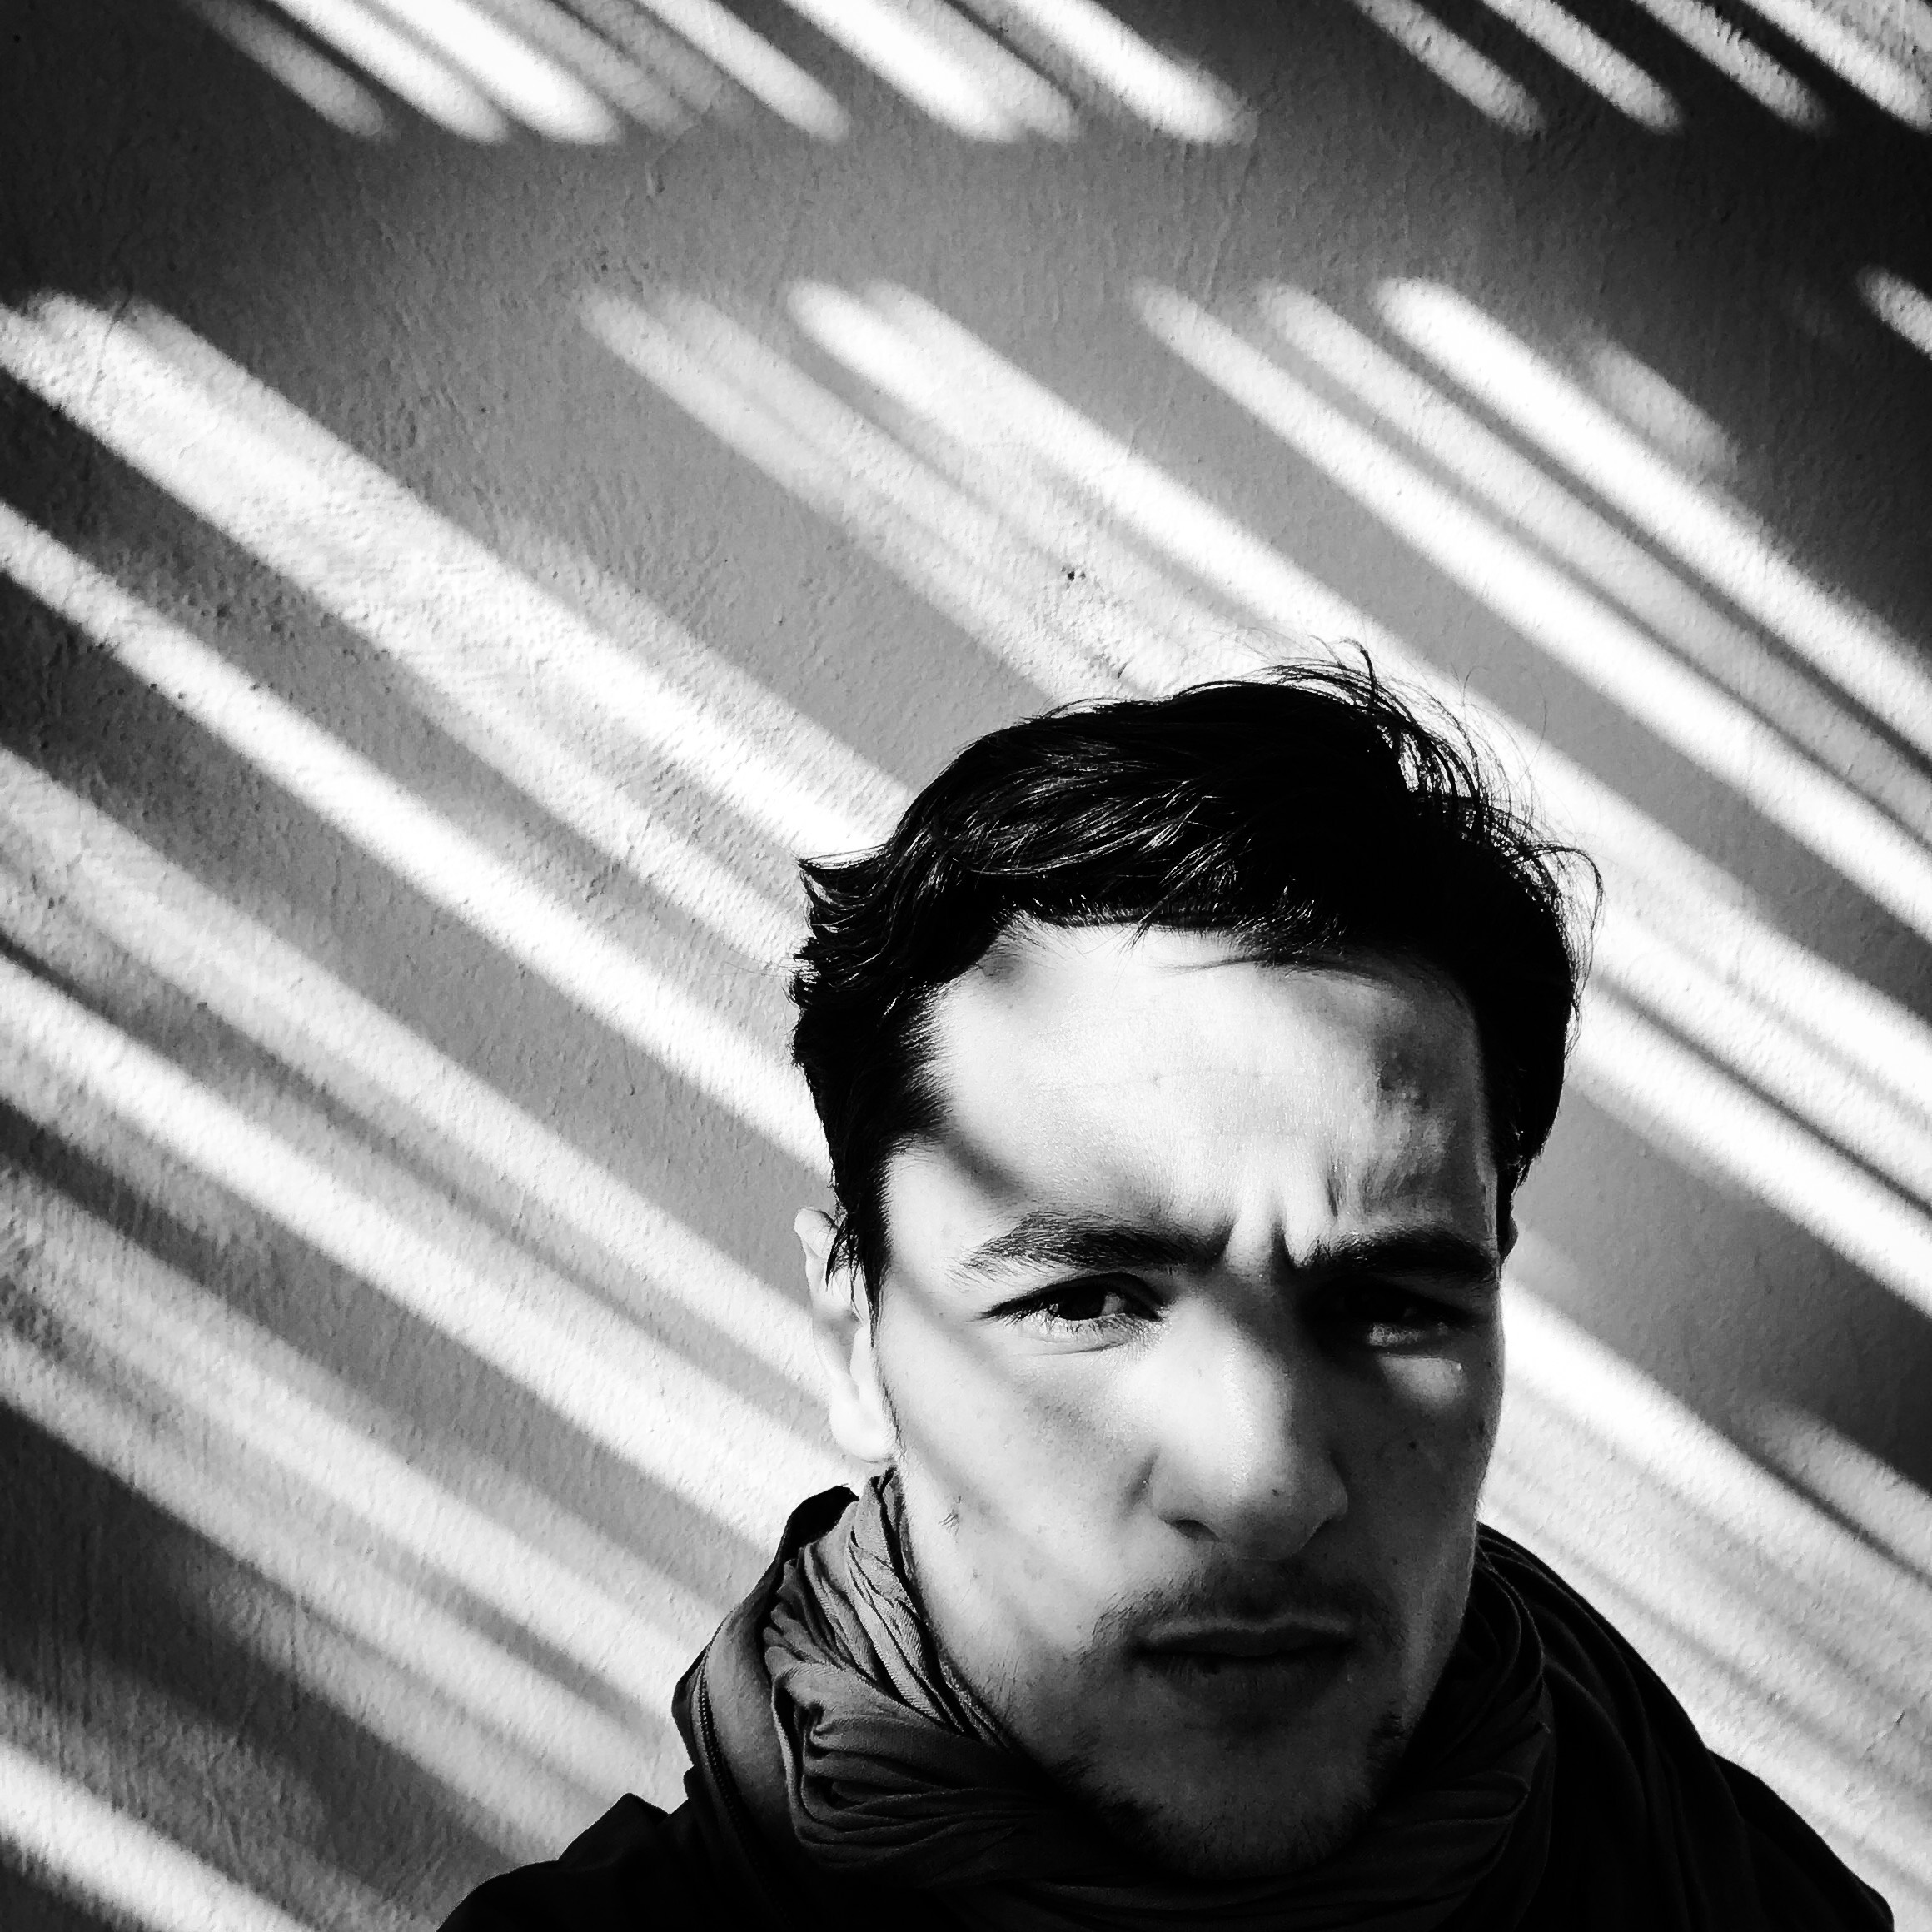 Fethi Sahraoui - Born in 1993 in the southern town of Hassi R'mel, Fethi Sahraoui (Algeria) is a self-taught social documentary photographer. He has recently graduated with a Masters in 'American Civilization' at the university in Mascara. He is a member of the 220 Collective.